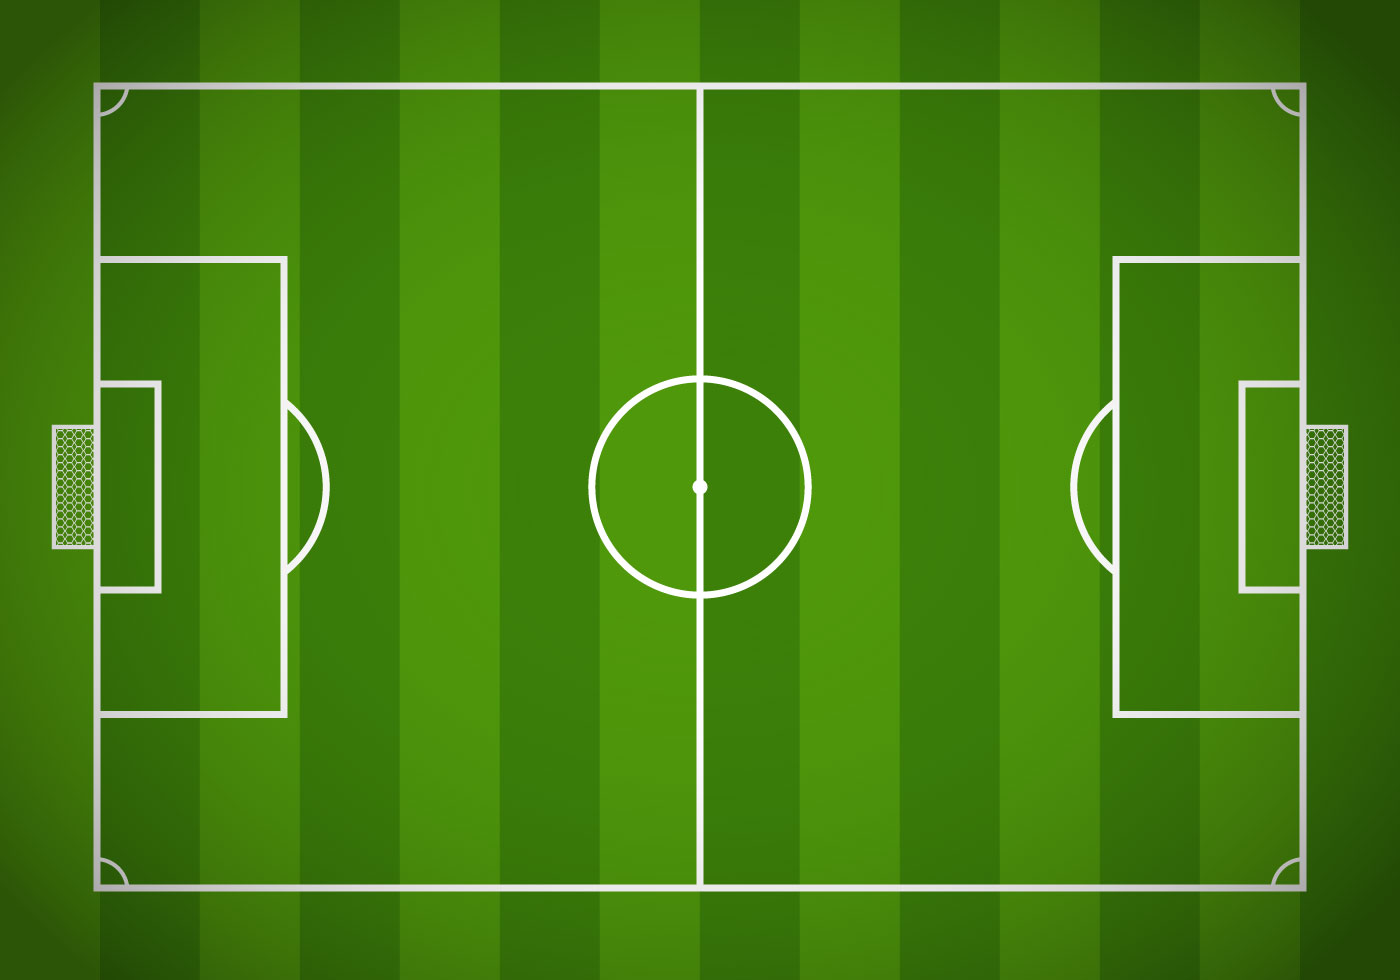 Soccer field background clipart clip art transparent library Soccer Field Free Vector Art - (9,762 Free Downloads) clip art transparent library